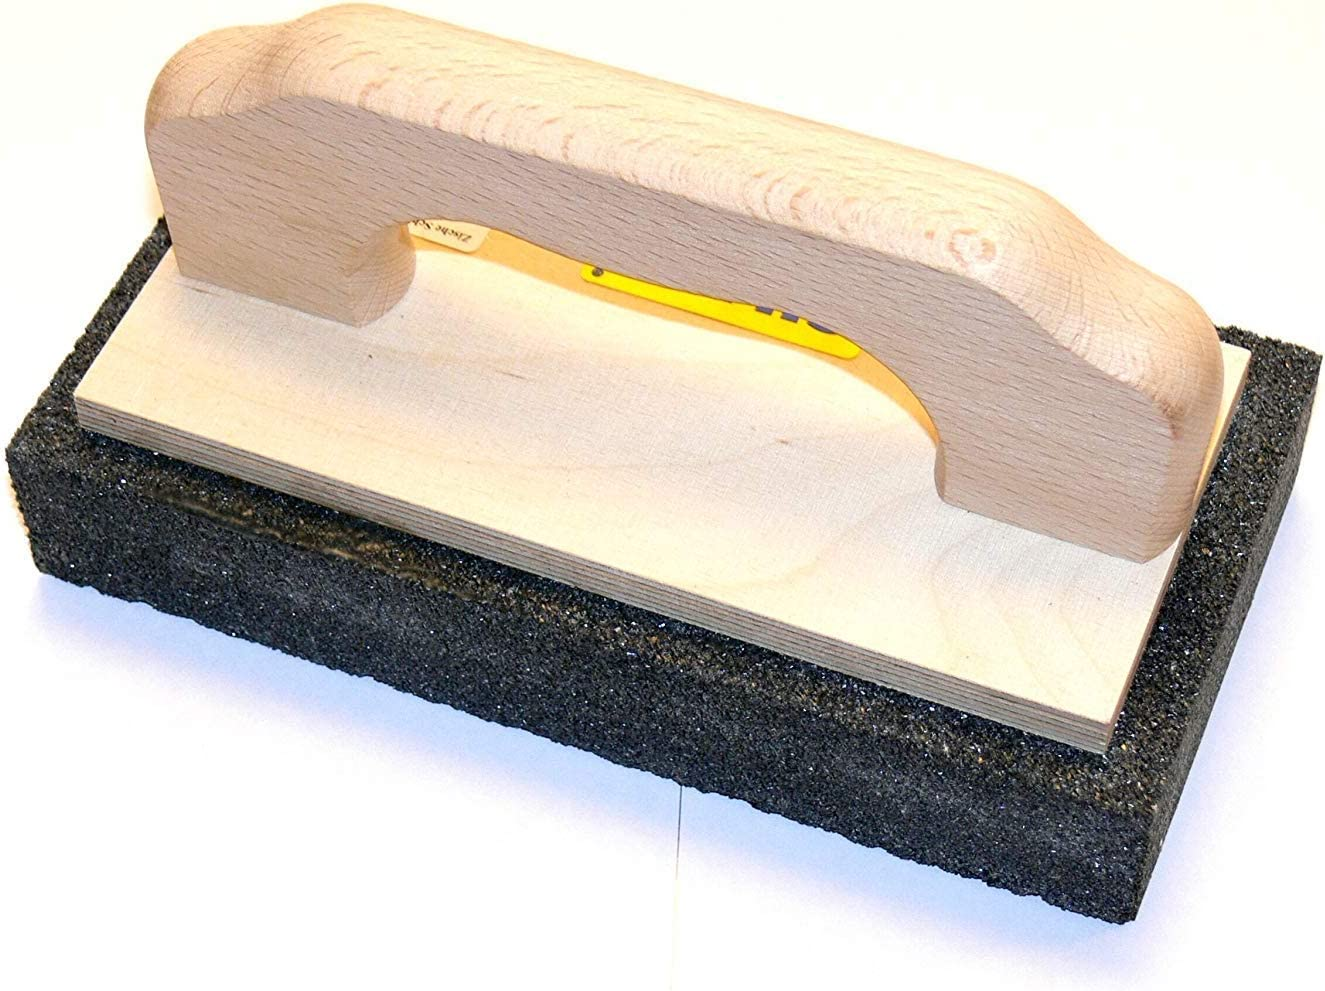 Grinding Stone Silicon Carbide with Handle for concrete and screed 200 x 100 x 35 MM